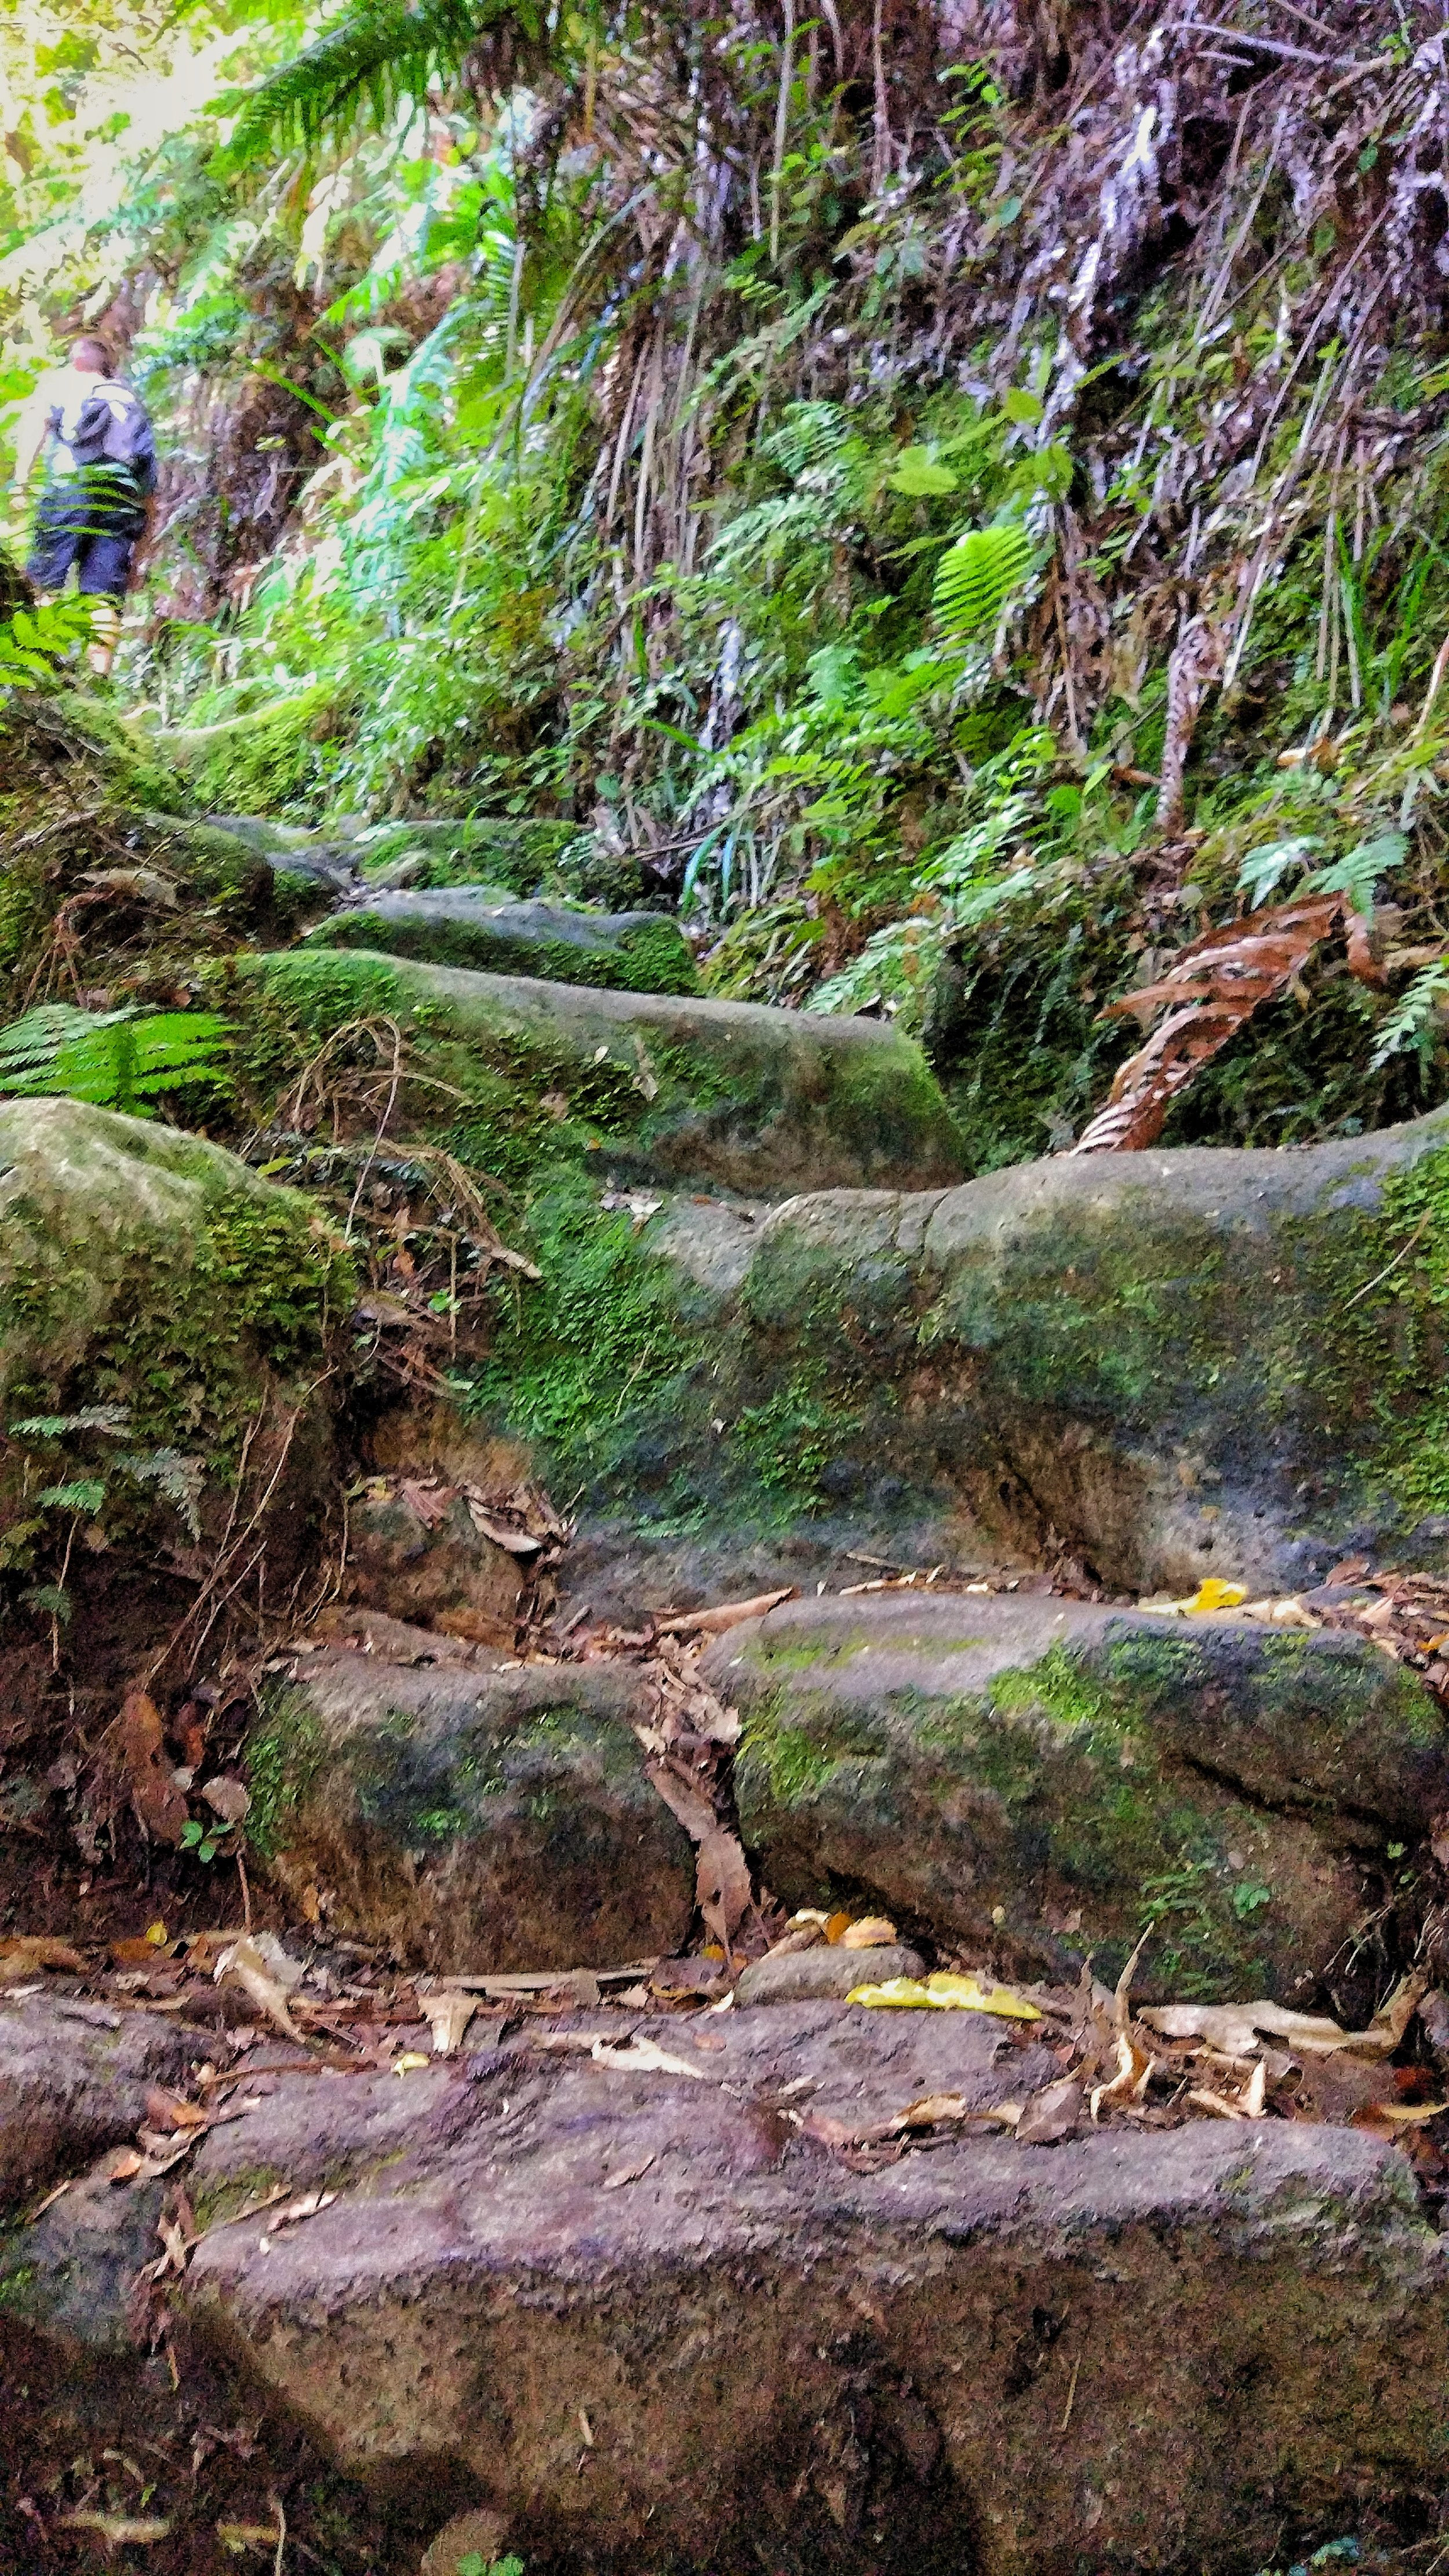 20180101_new_zealand_coromandel_kauaeranga_valley_pinnacles_walk_stairs.jpeg